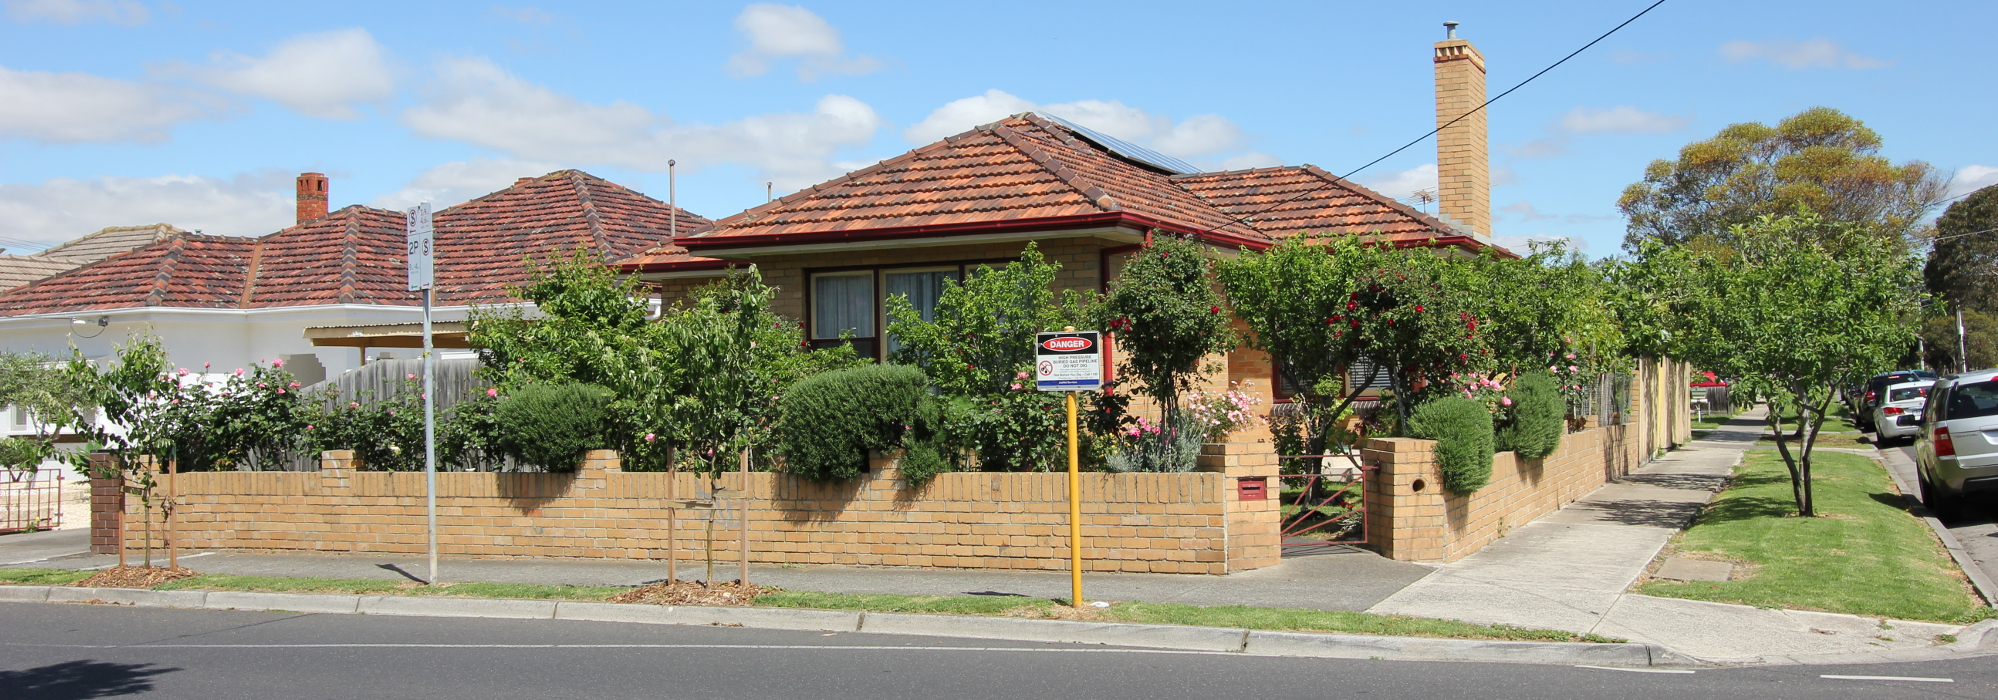 12 Summerhill road, Maidstone VIC 3012